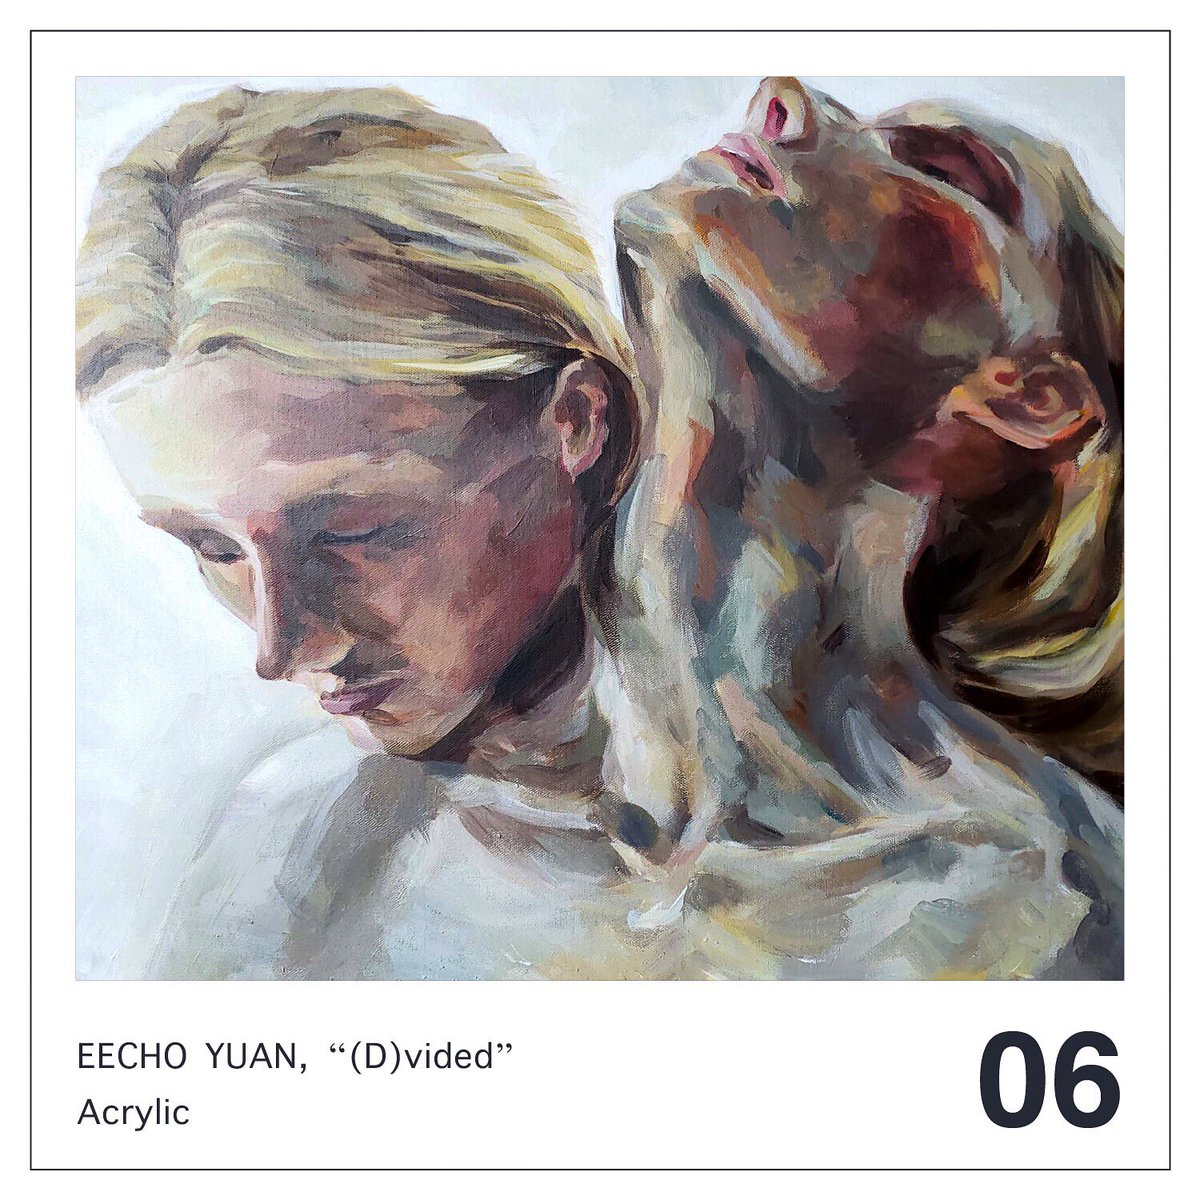 """""""Eyes closed. Two heads. One body.""""  06: Eecho Yuan (Age 14), Sherry Art Studio (D)vided, acrylic   #studentartist #localart #localmuseum #sandiego #acrylicpainting https://t.co/hP6tplAAhY"""